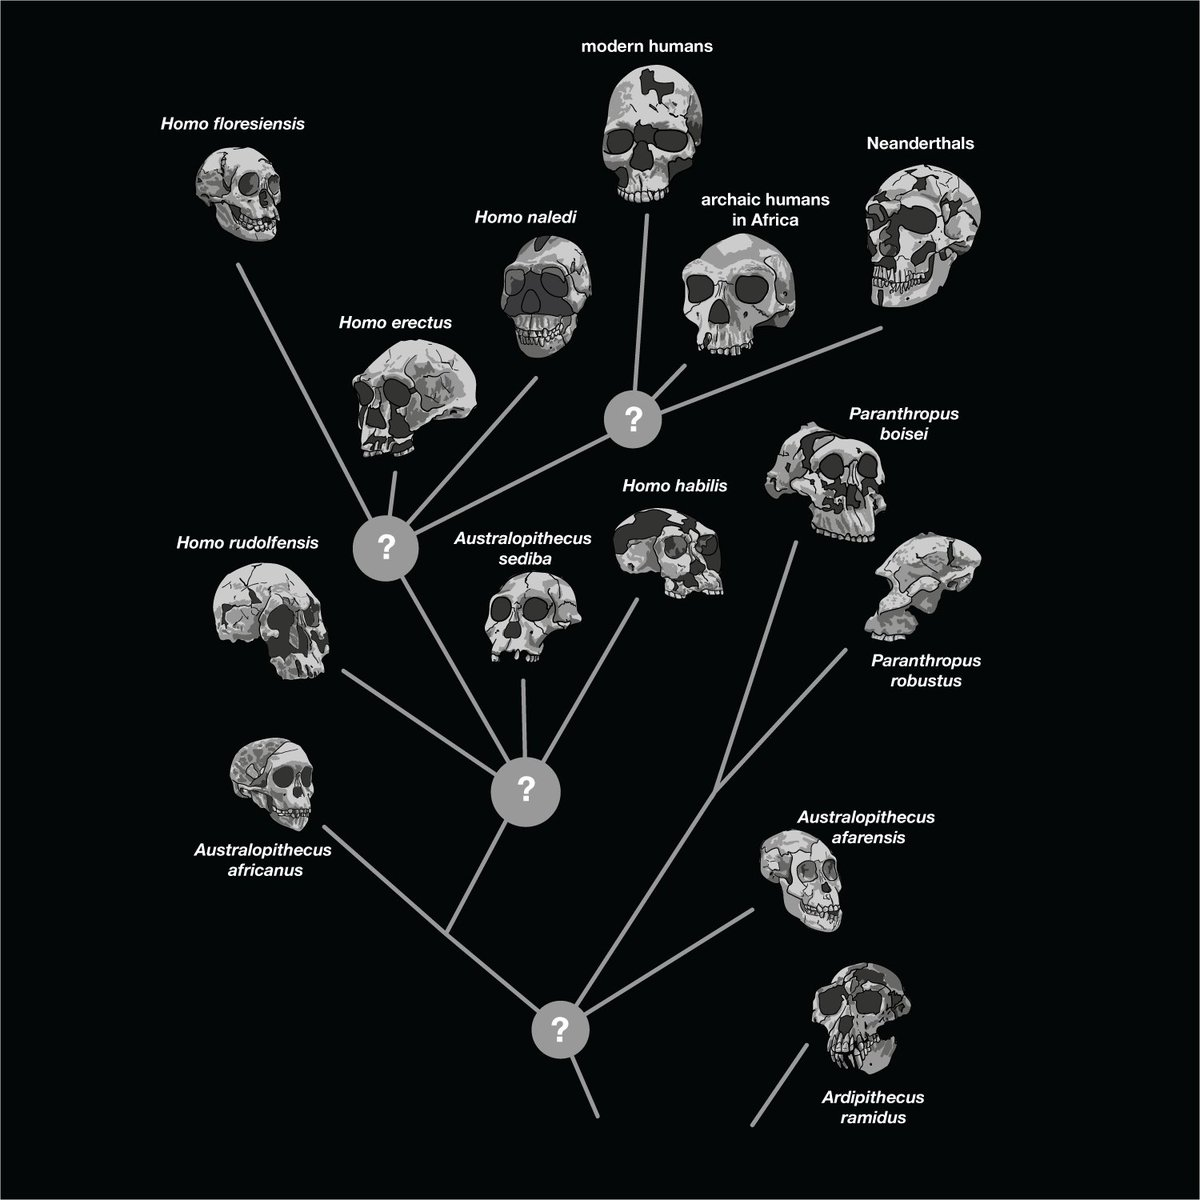 How is #Homonaledi related to humans and other hominins? The short answer: We don't know for sure. https://t.co/MAm74Sy2qh